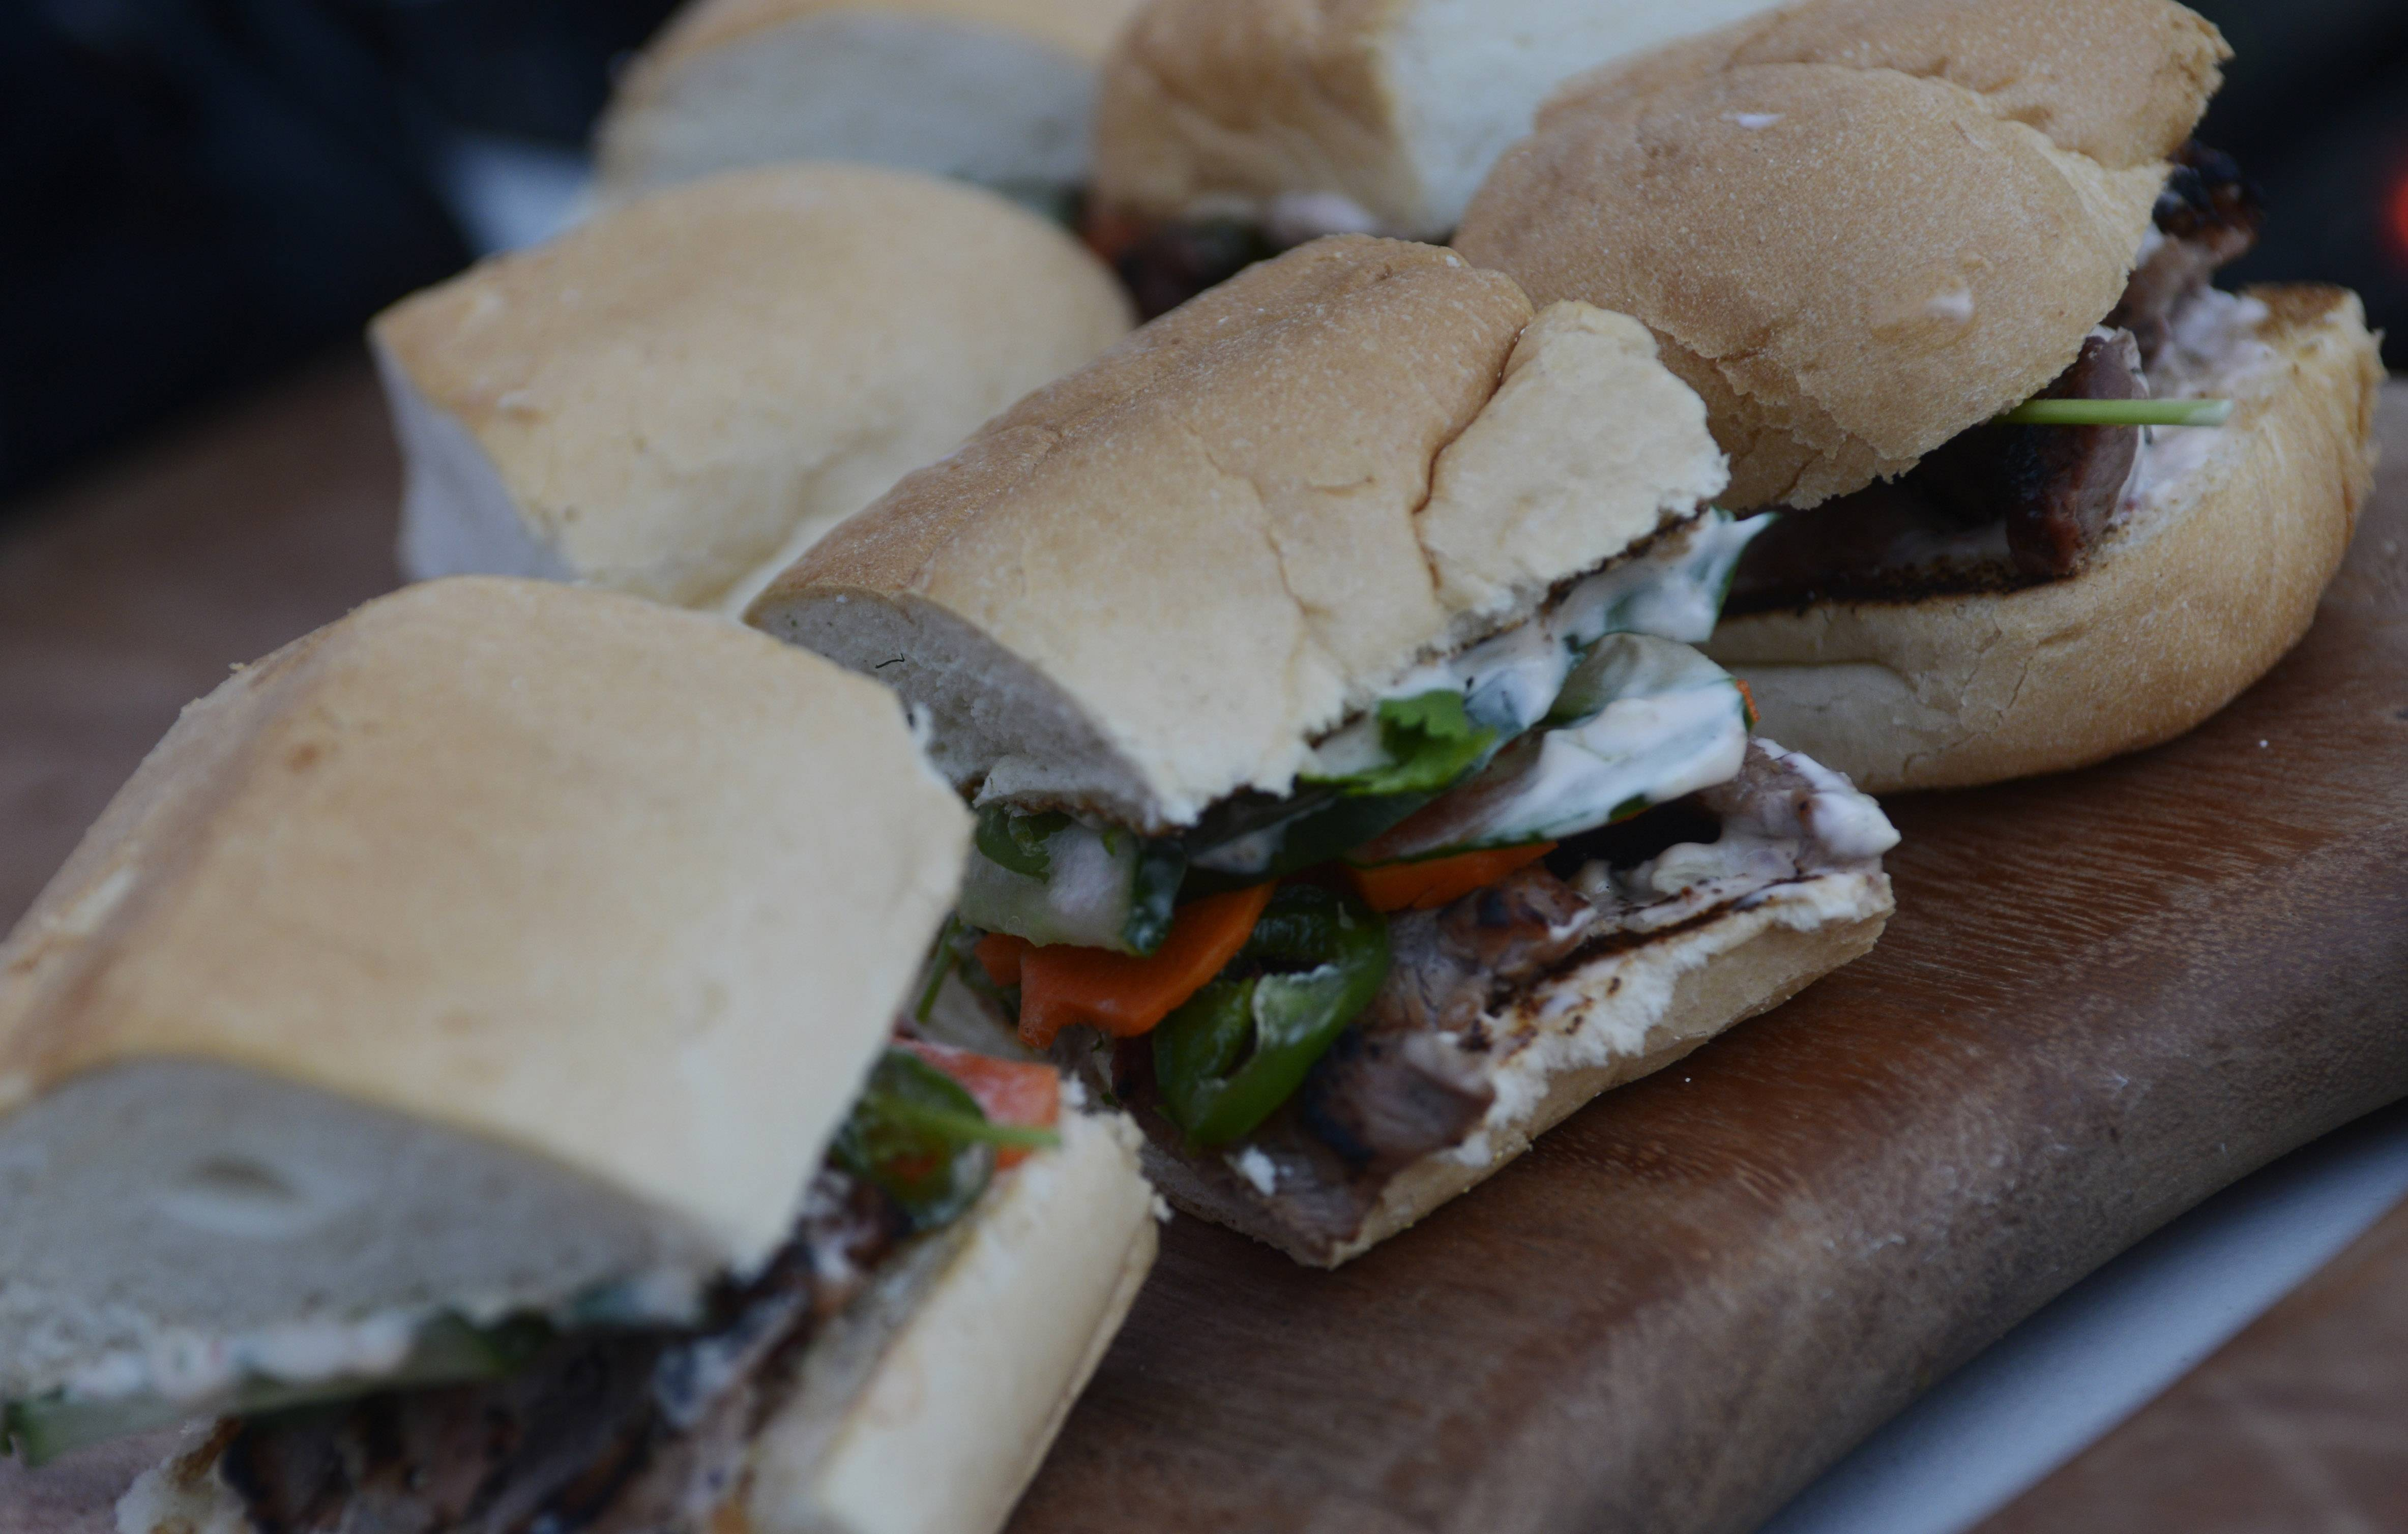 Korean-style pork sliders topped with pickled vegetables will score points with guests at football tailgate parties.